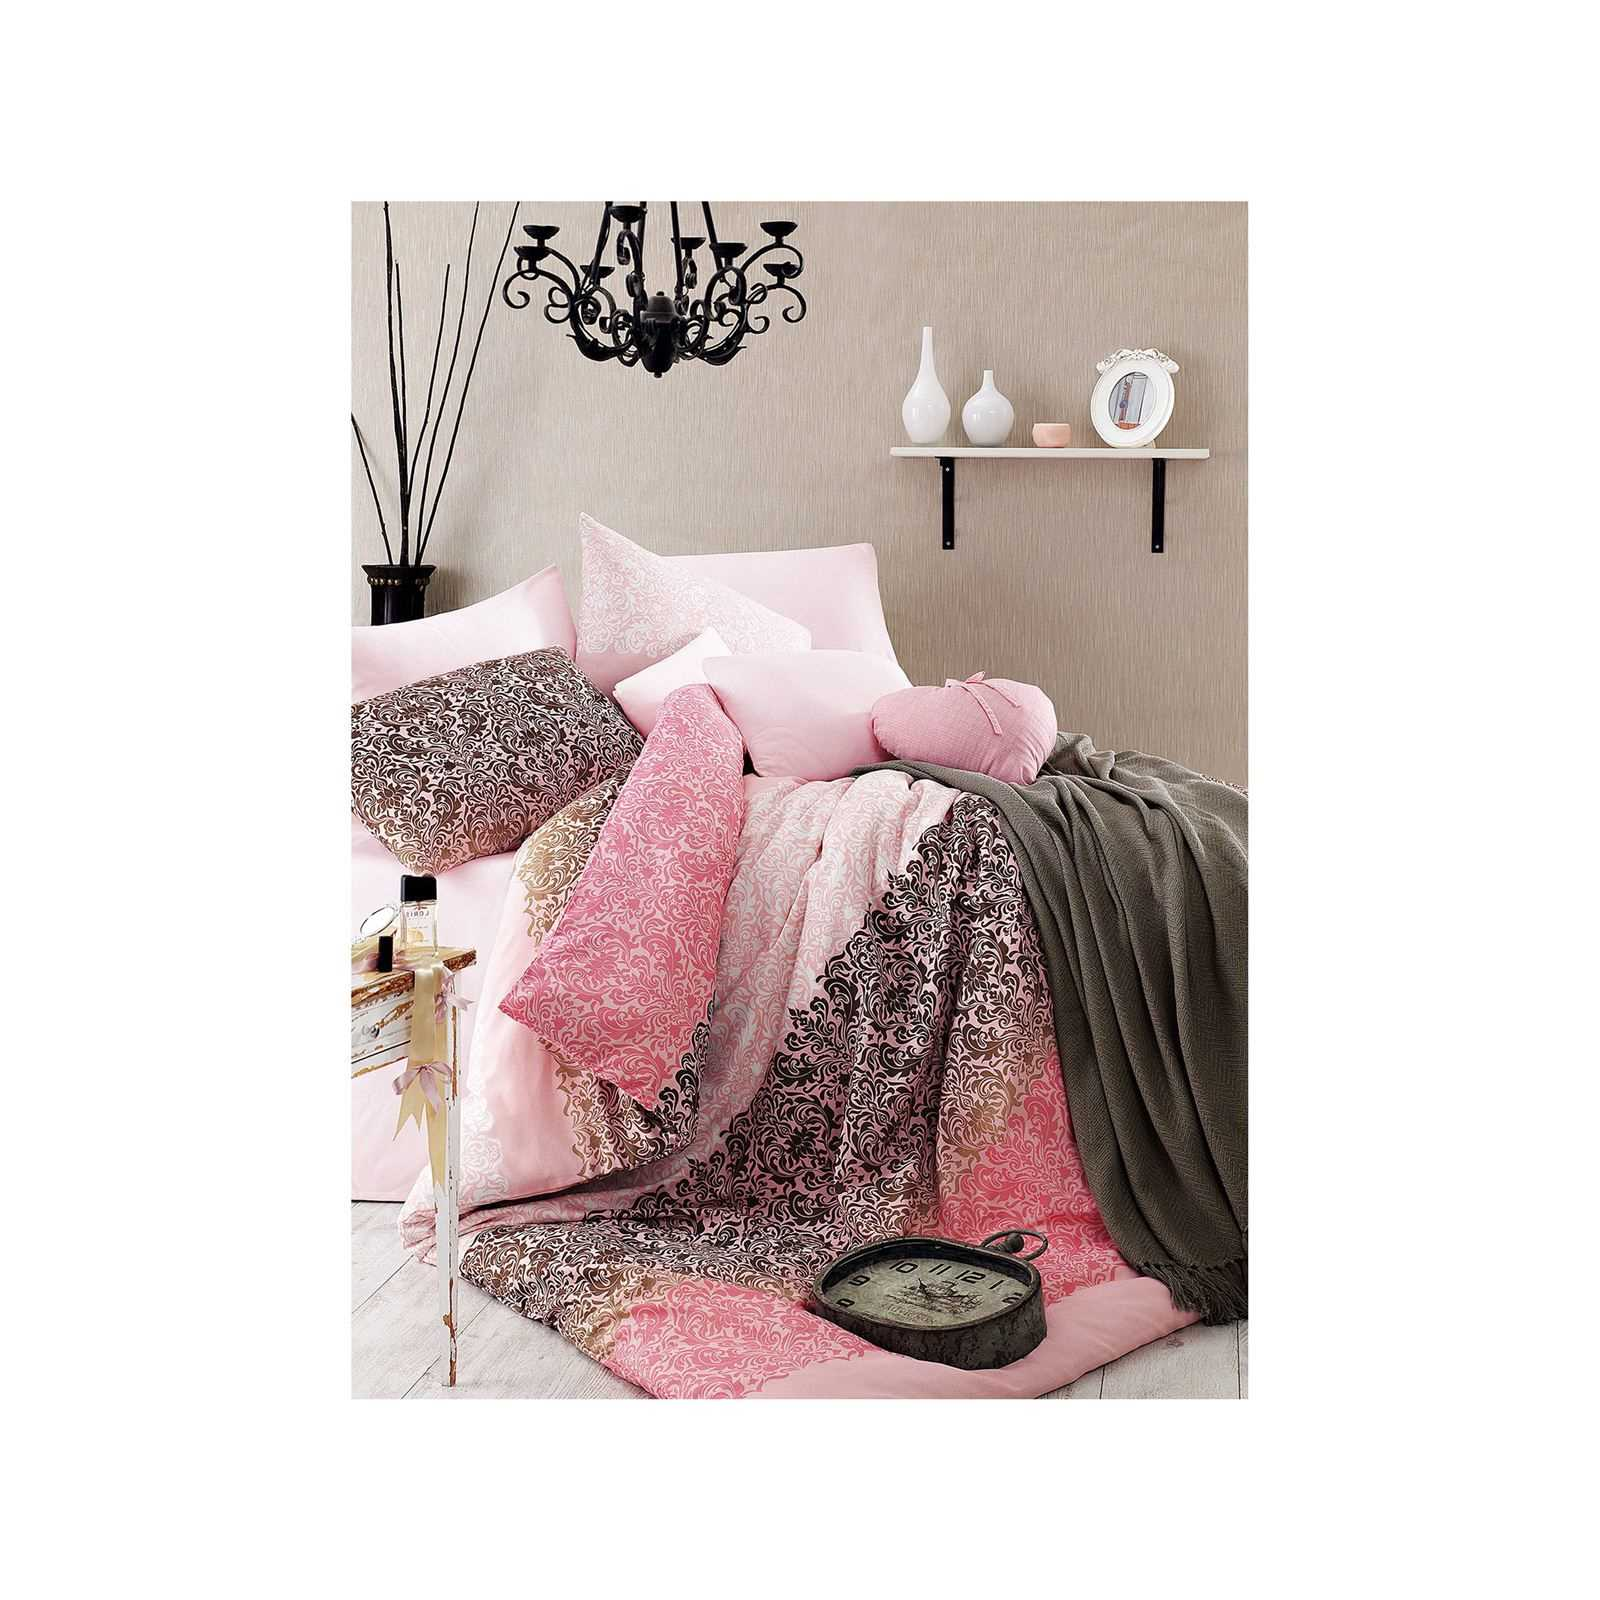 en vogue parure de lit rose brandalley. Black Bedroom Furniture Sets. Home Design Ideas